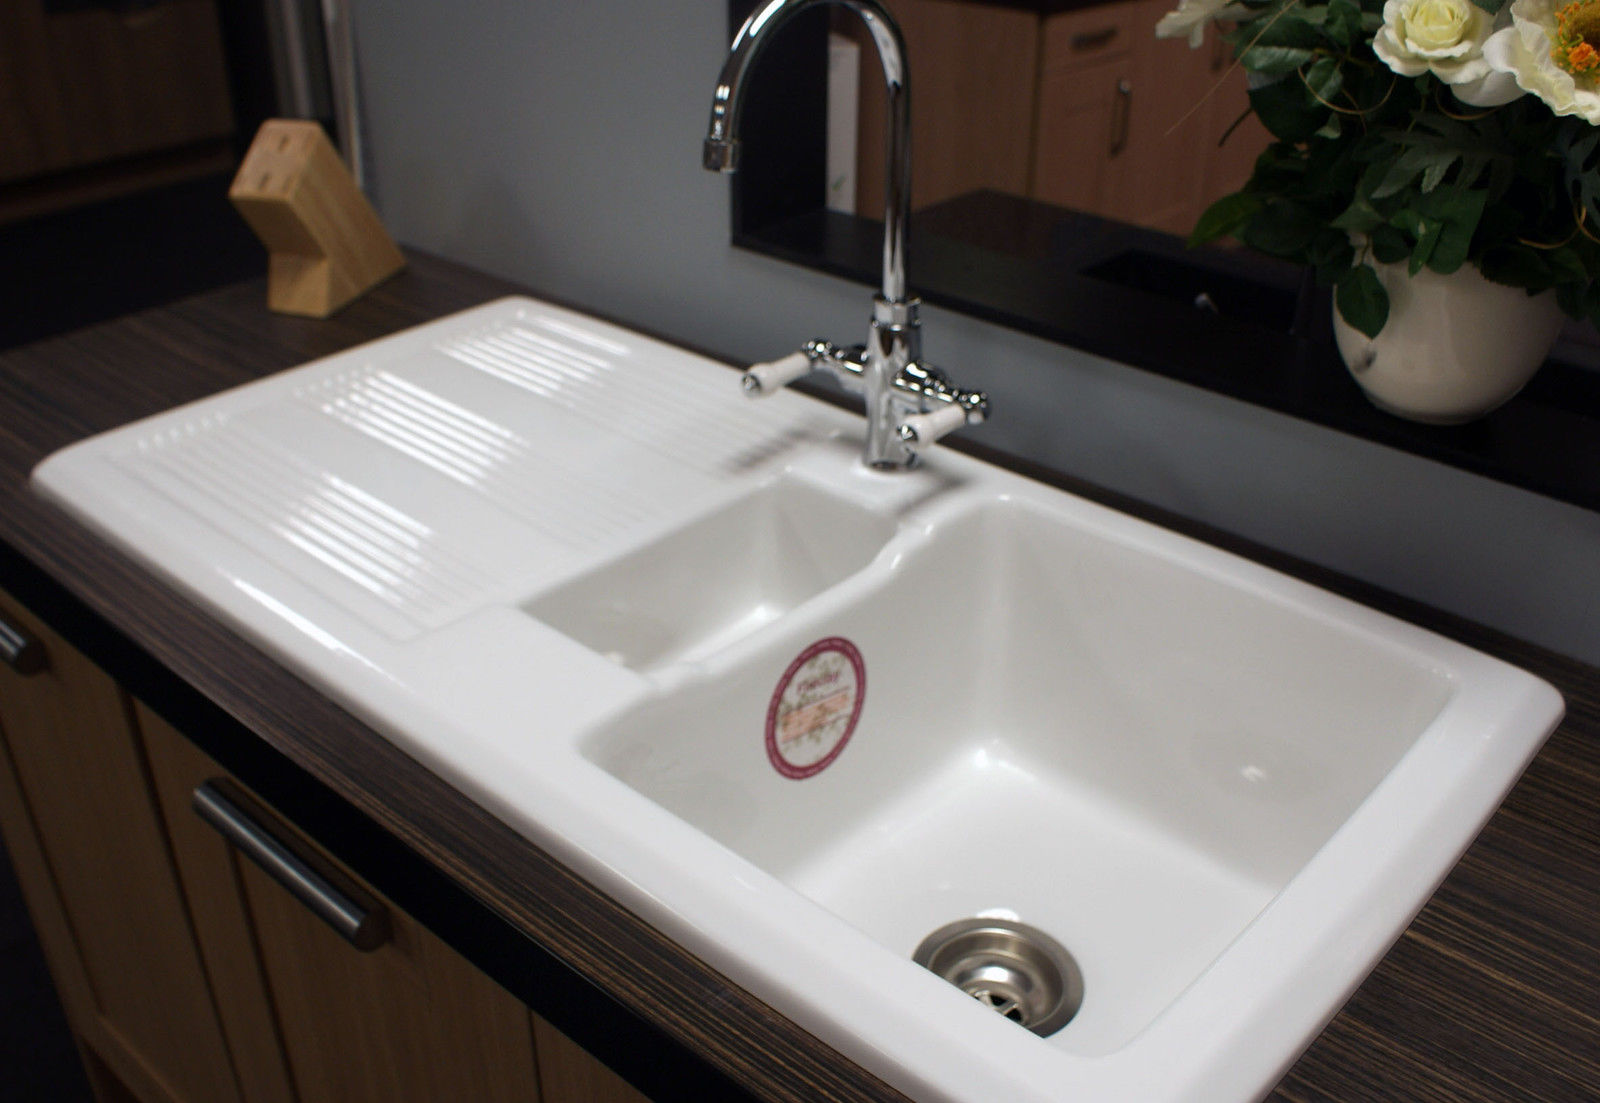 Rak Ceramic Kitchen Sink 1.5 Bowl 10 Year Rak Guarantee With ...